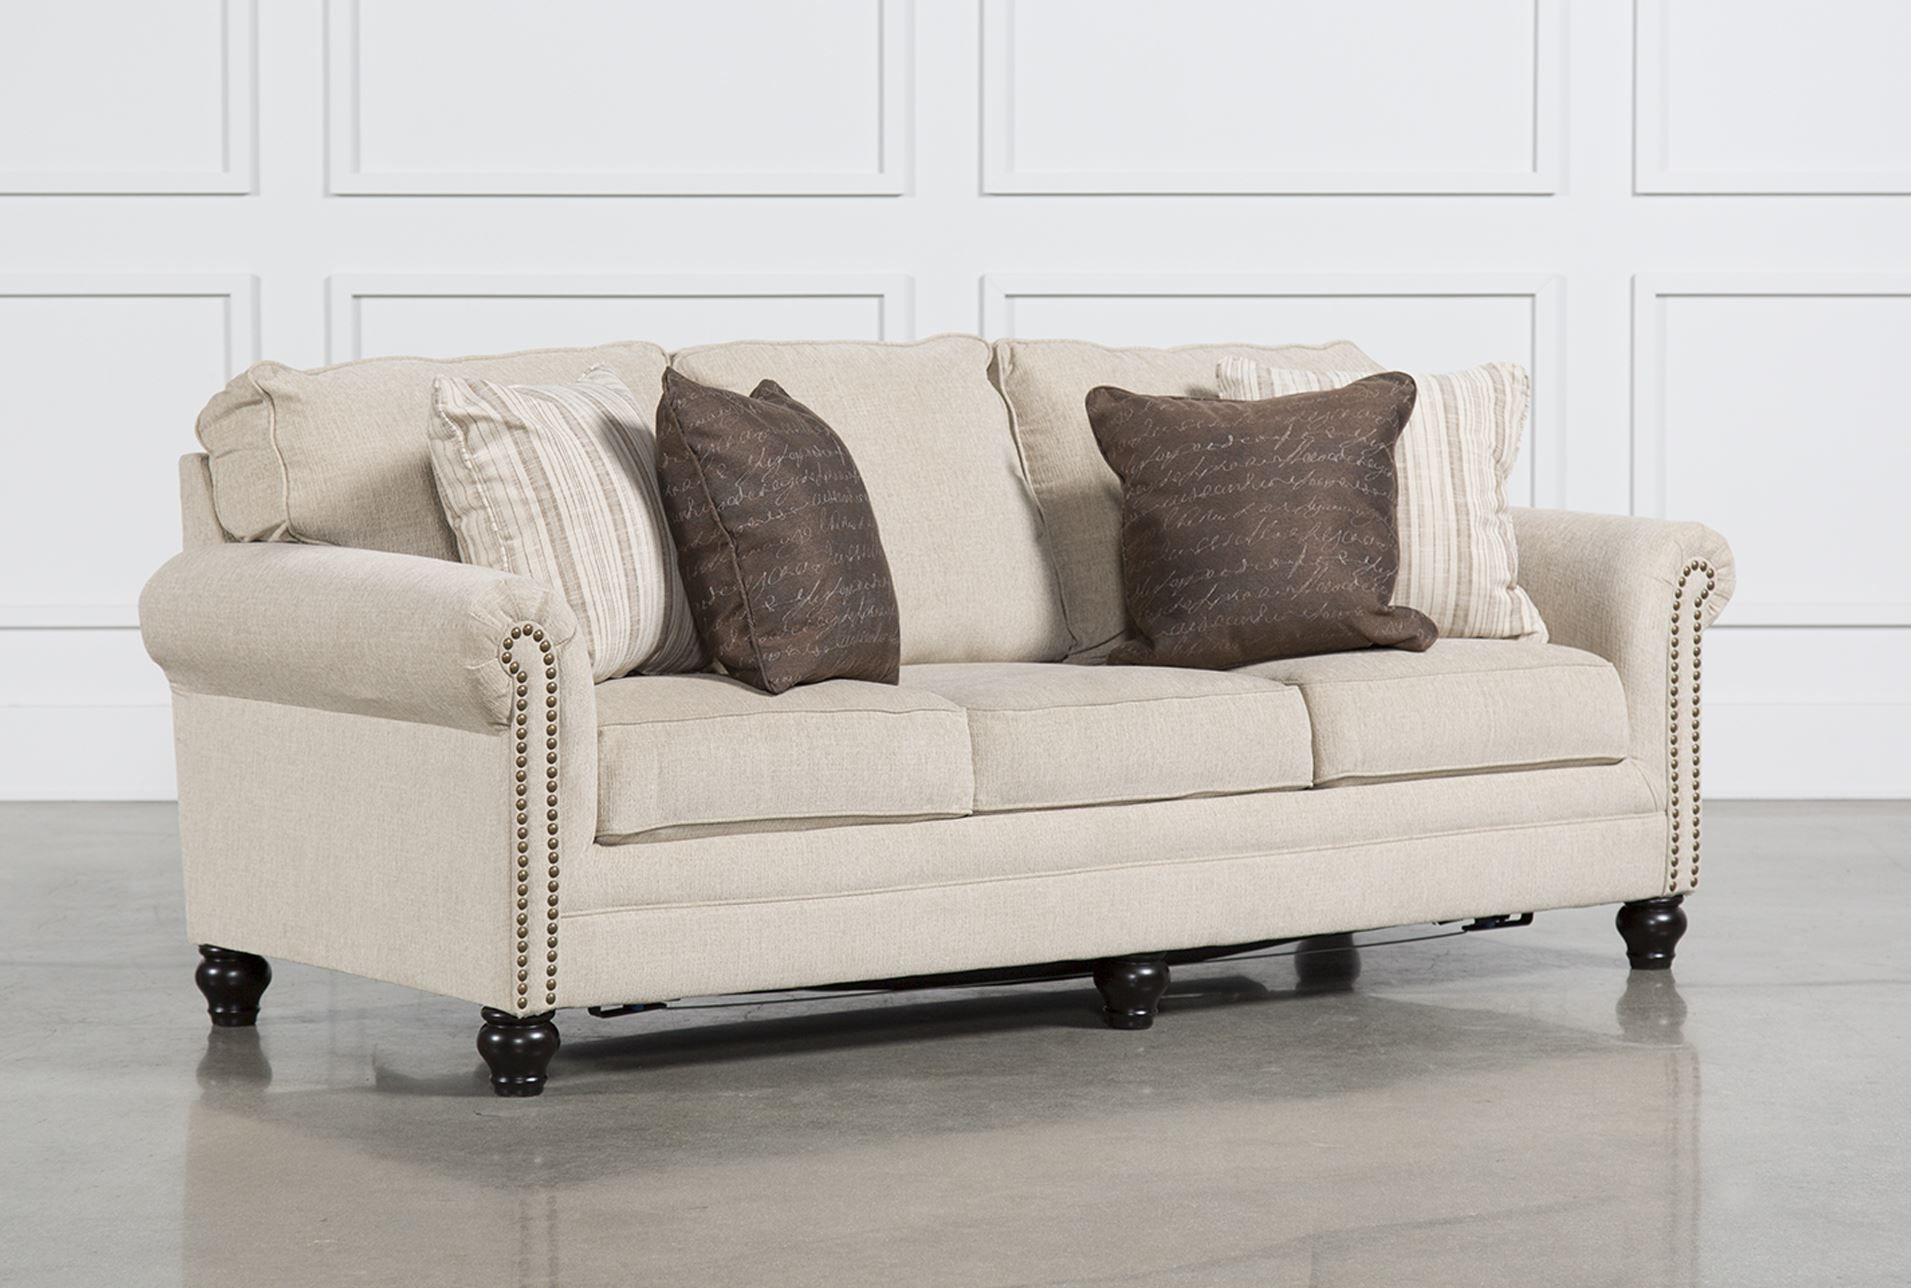 Living Spaces 81875 Signature but in a dark fabric